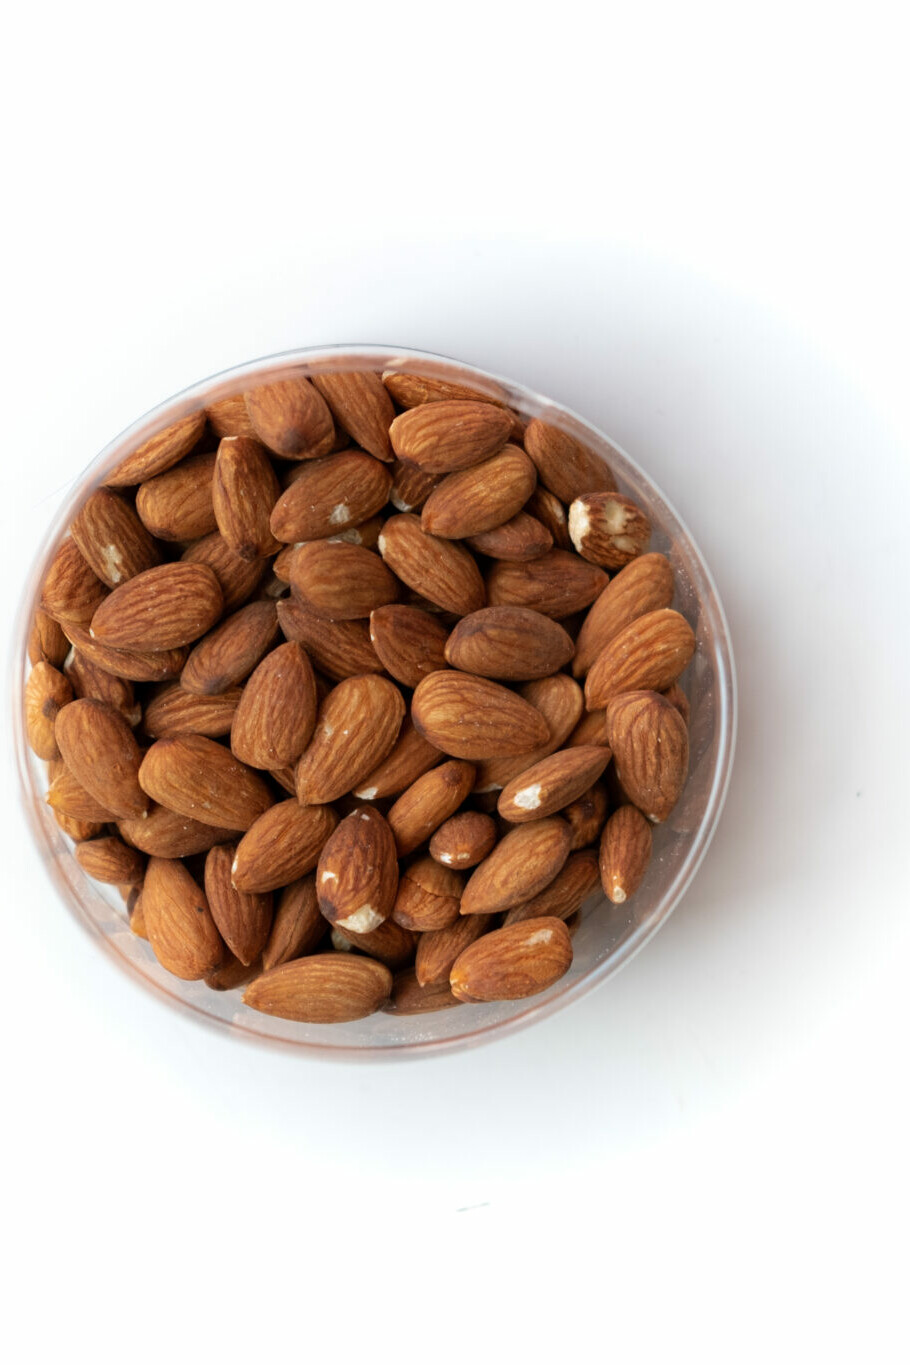 Organic almonds products